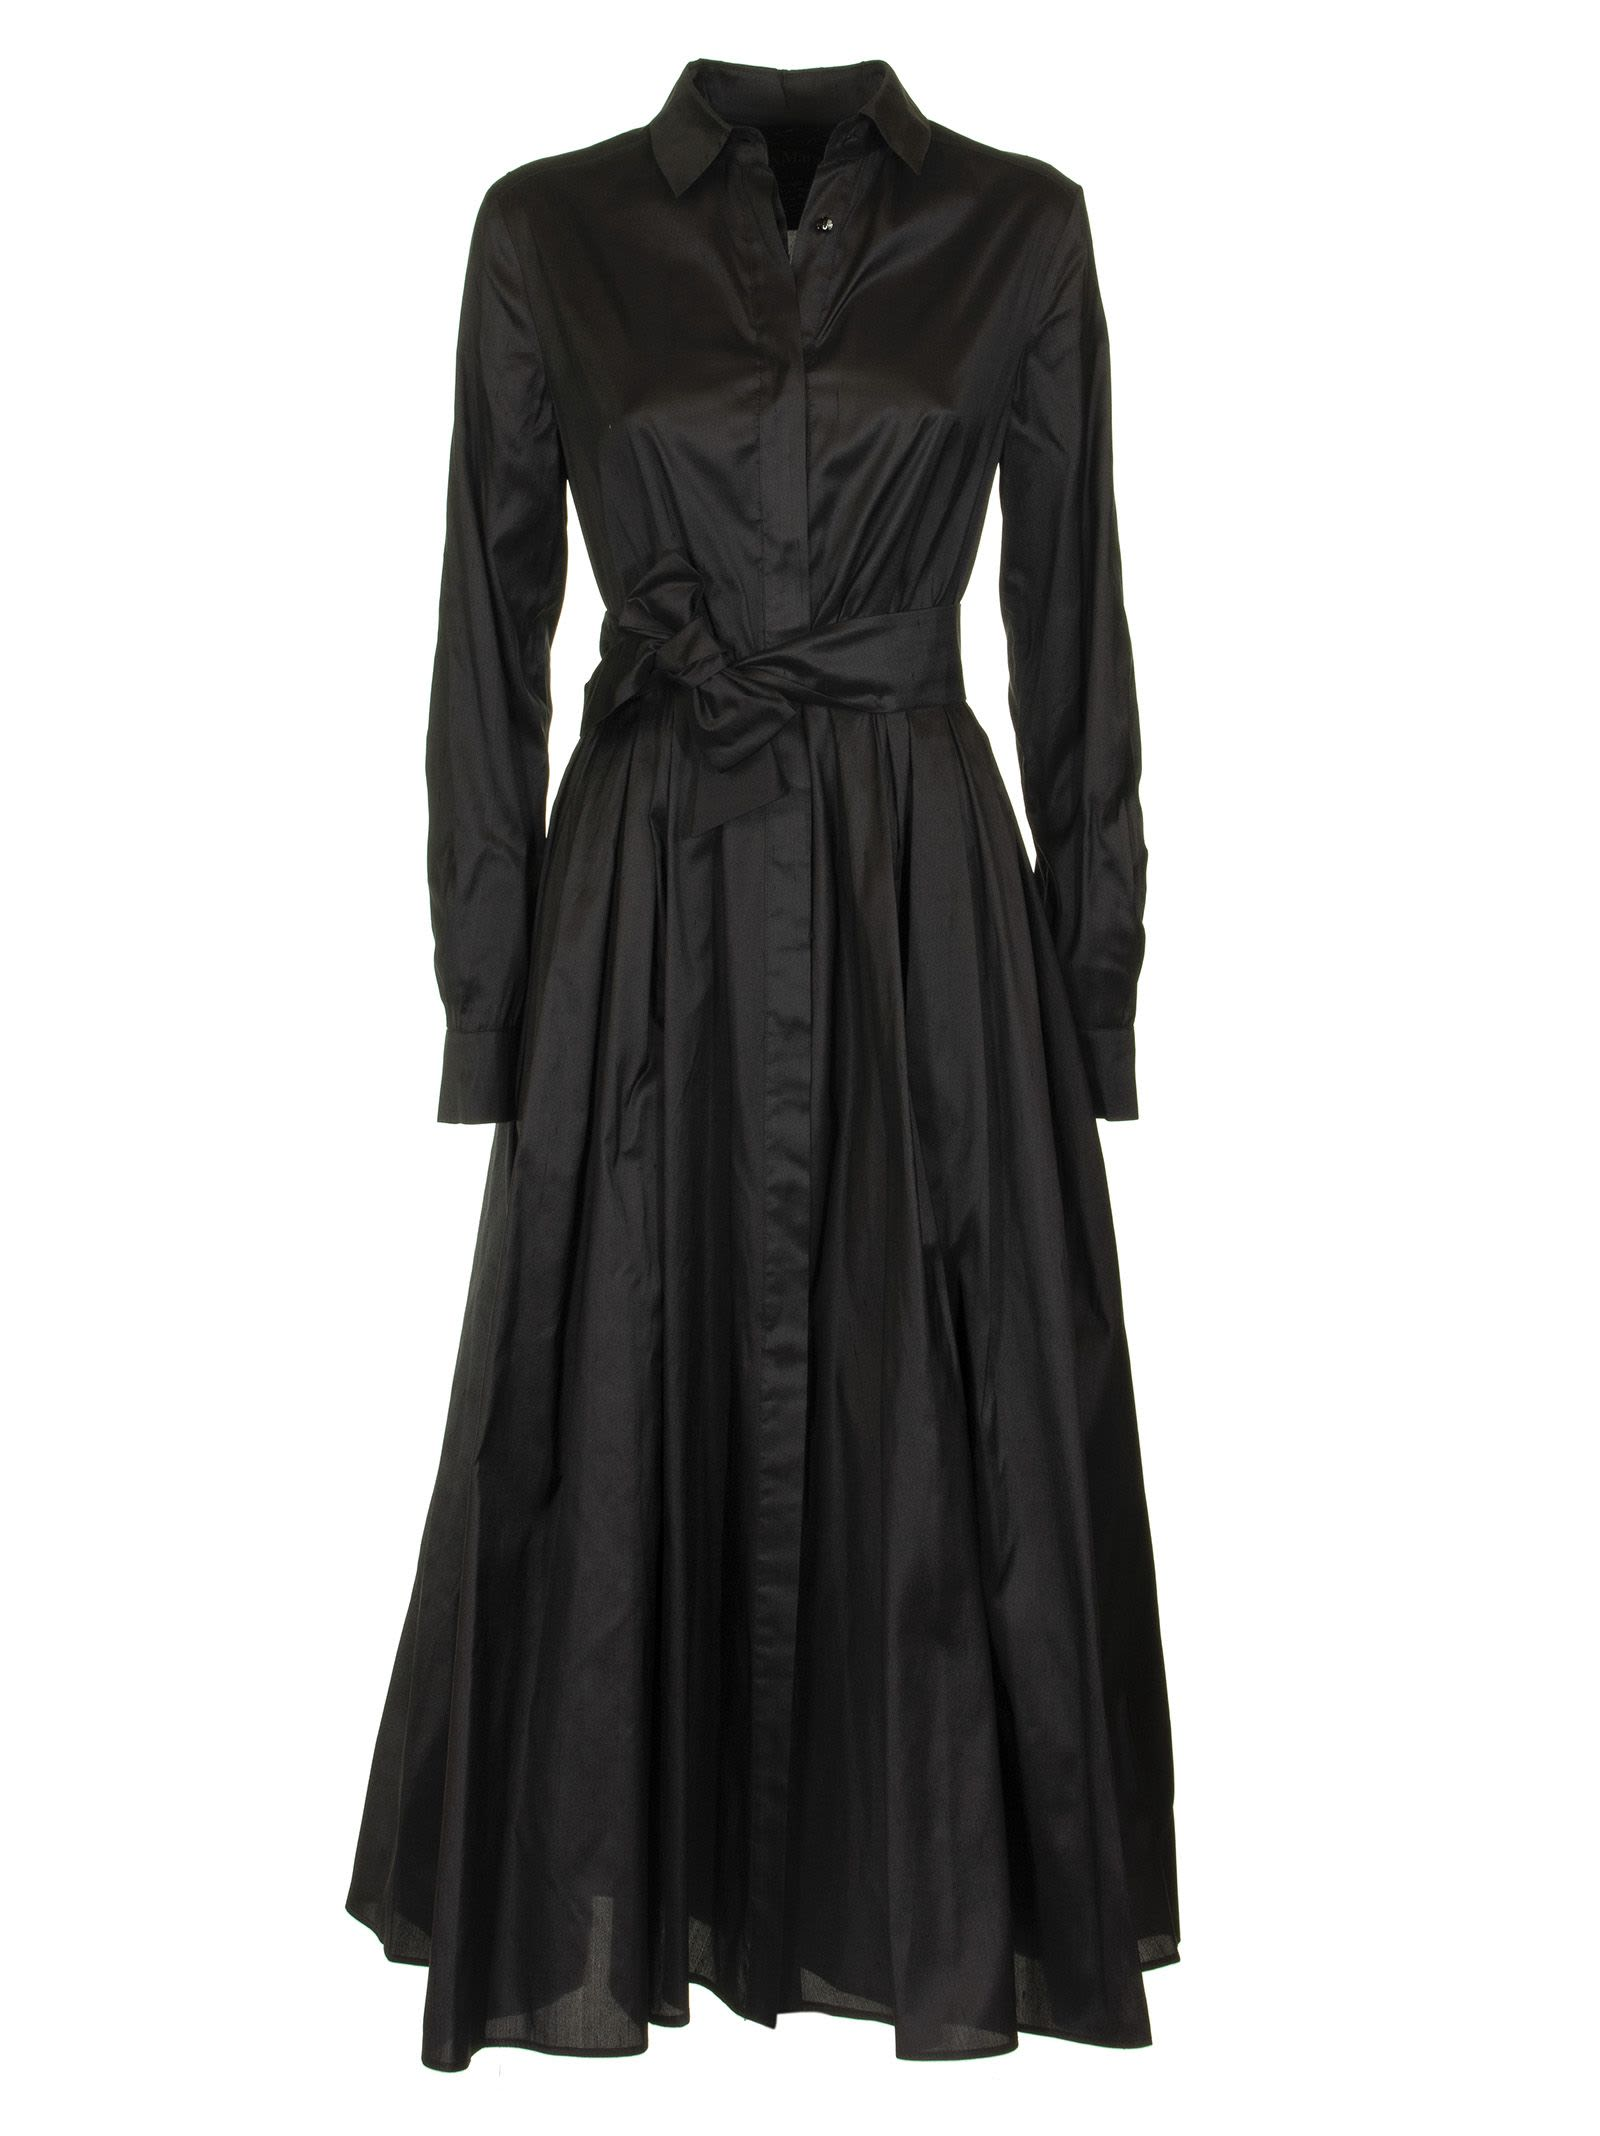 Max Mara Edwige Silk Shantung Dress